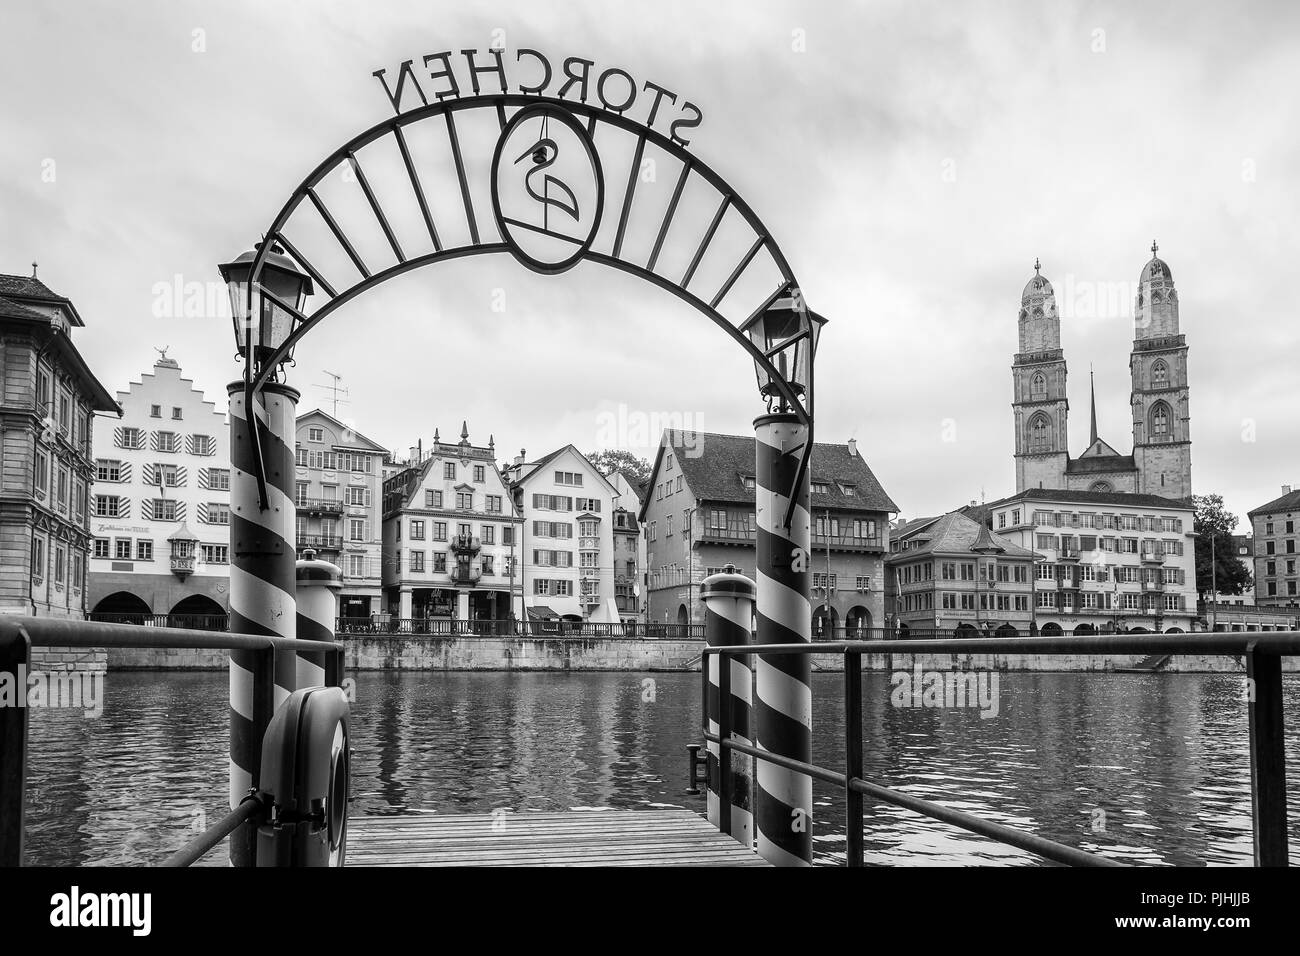 Pier on the Limmat river, Zurich, Switzerland - Stock Image